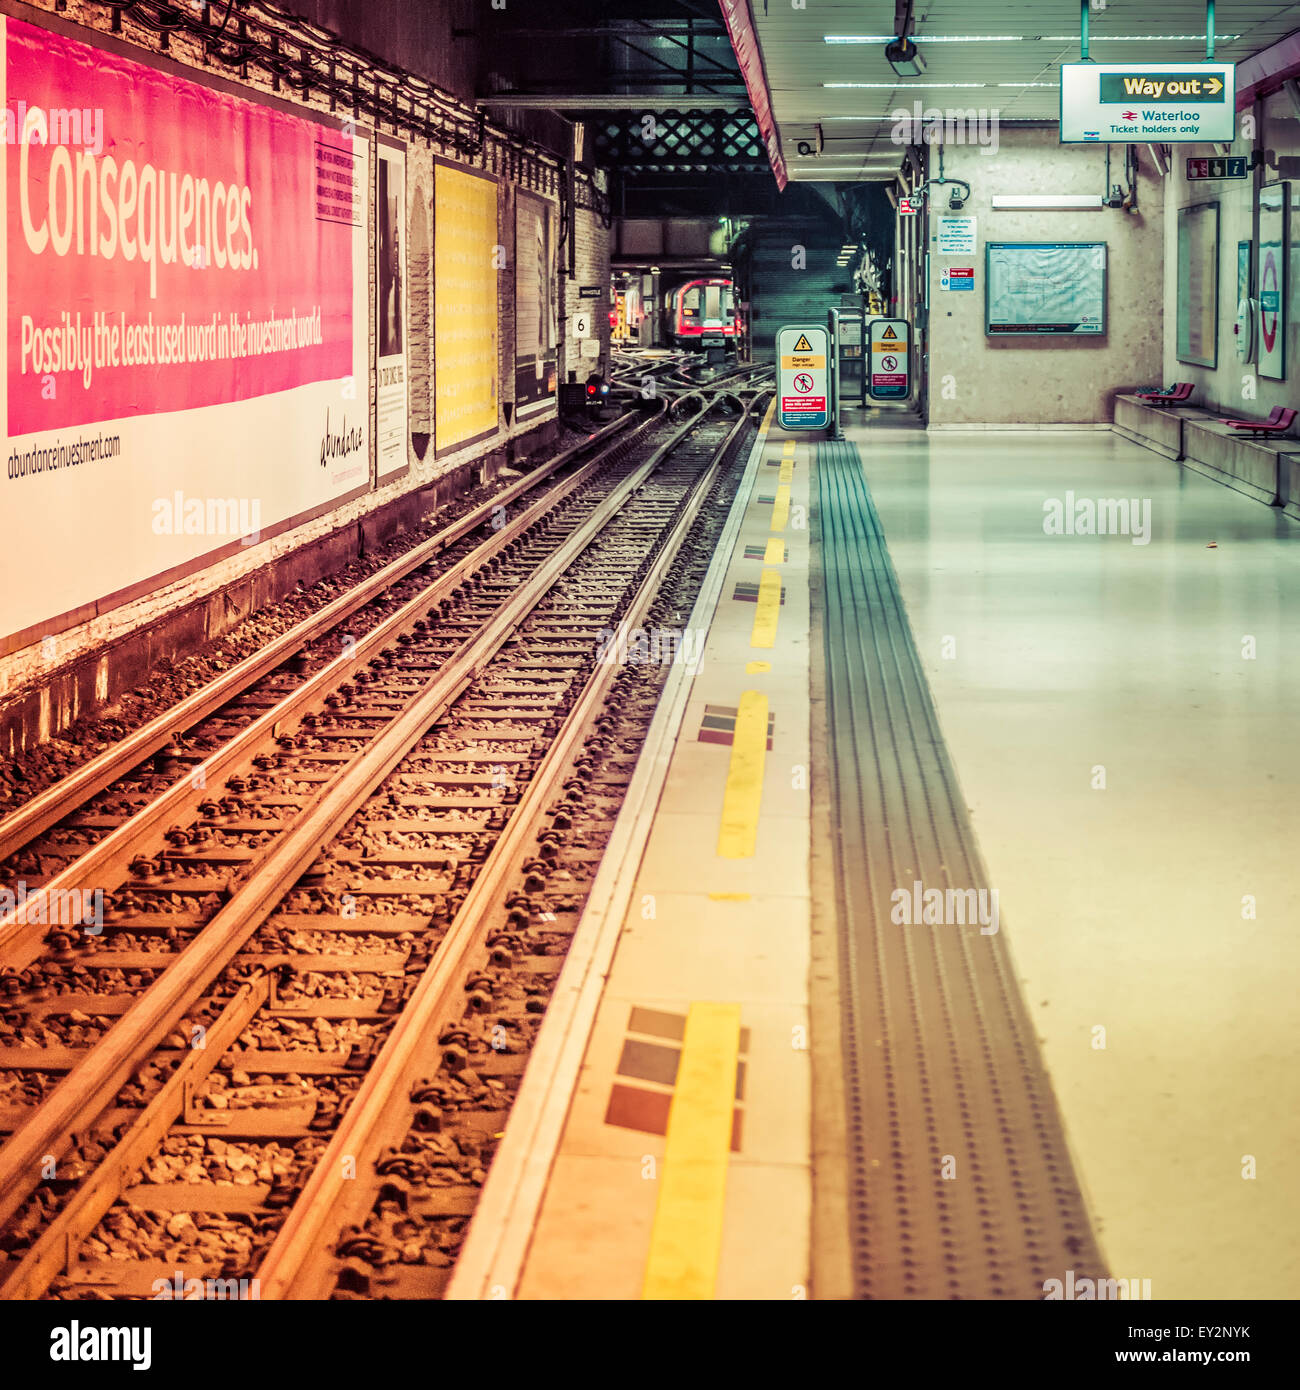 An empty platform on the Waterloo and City underground line at Waterloo station - Stock Image